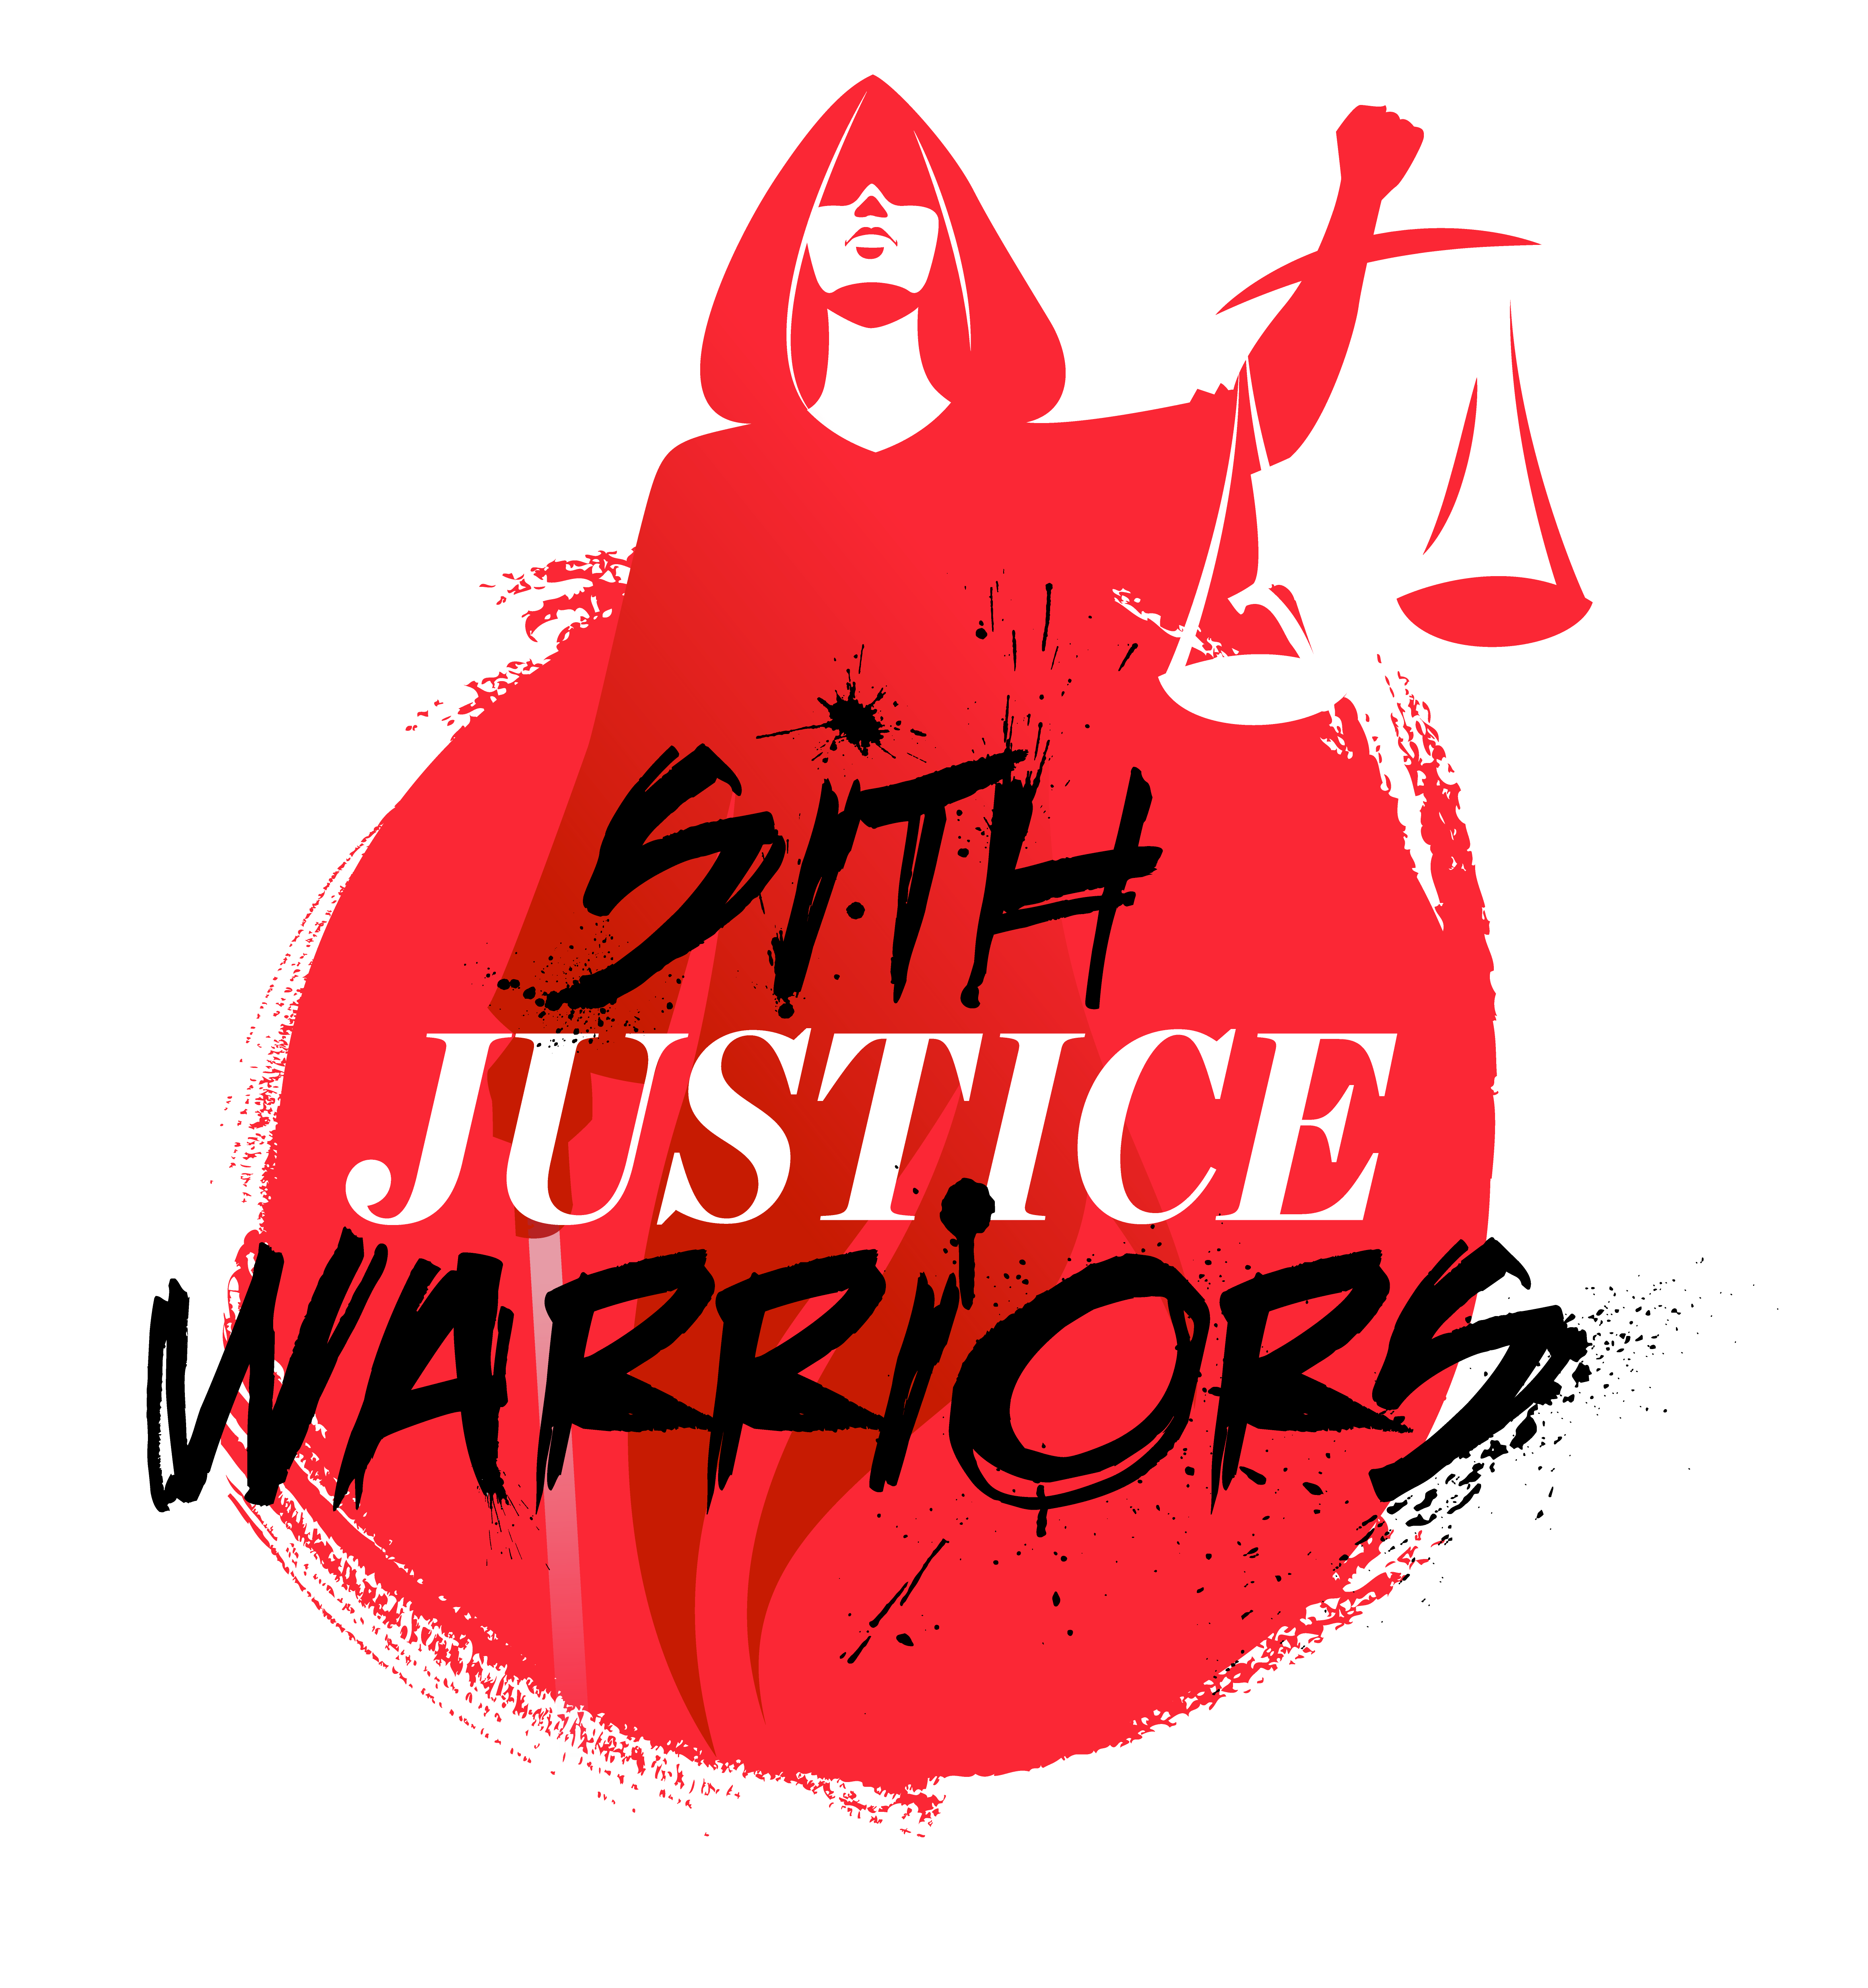 Sith Justice Warriors, an entertaining podcast by 3 friends who talk about games, Marvel, Star Wars and more